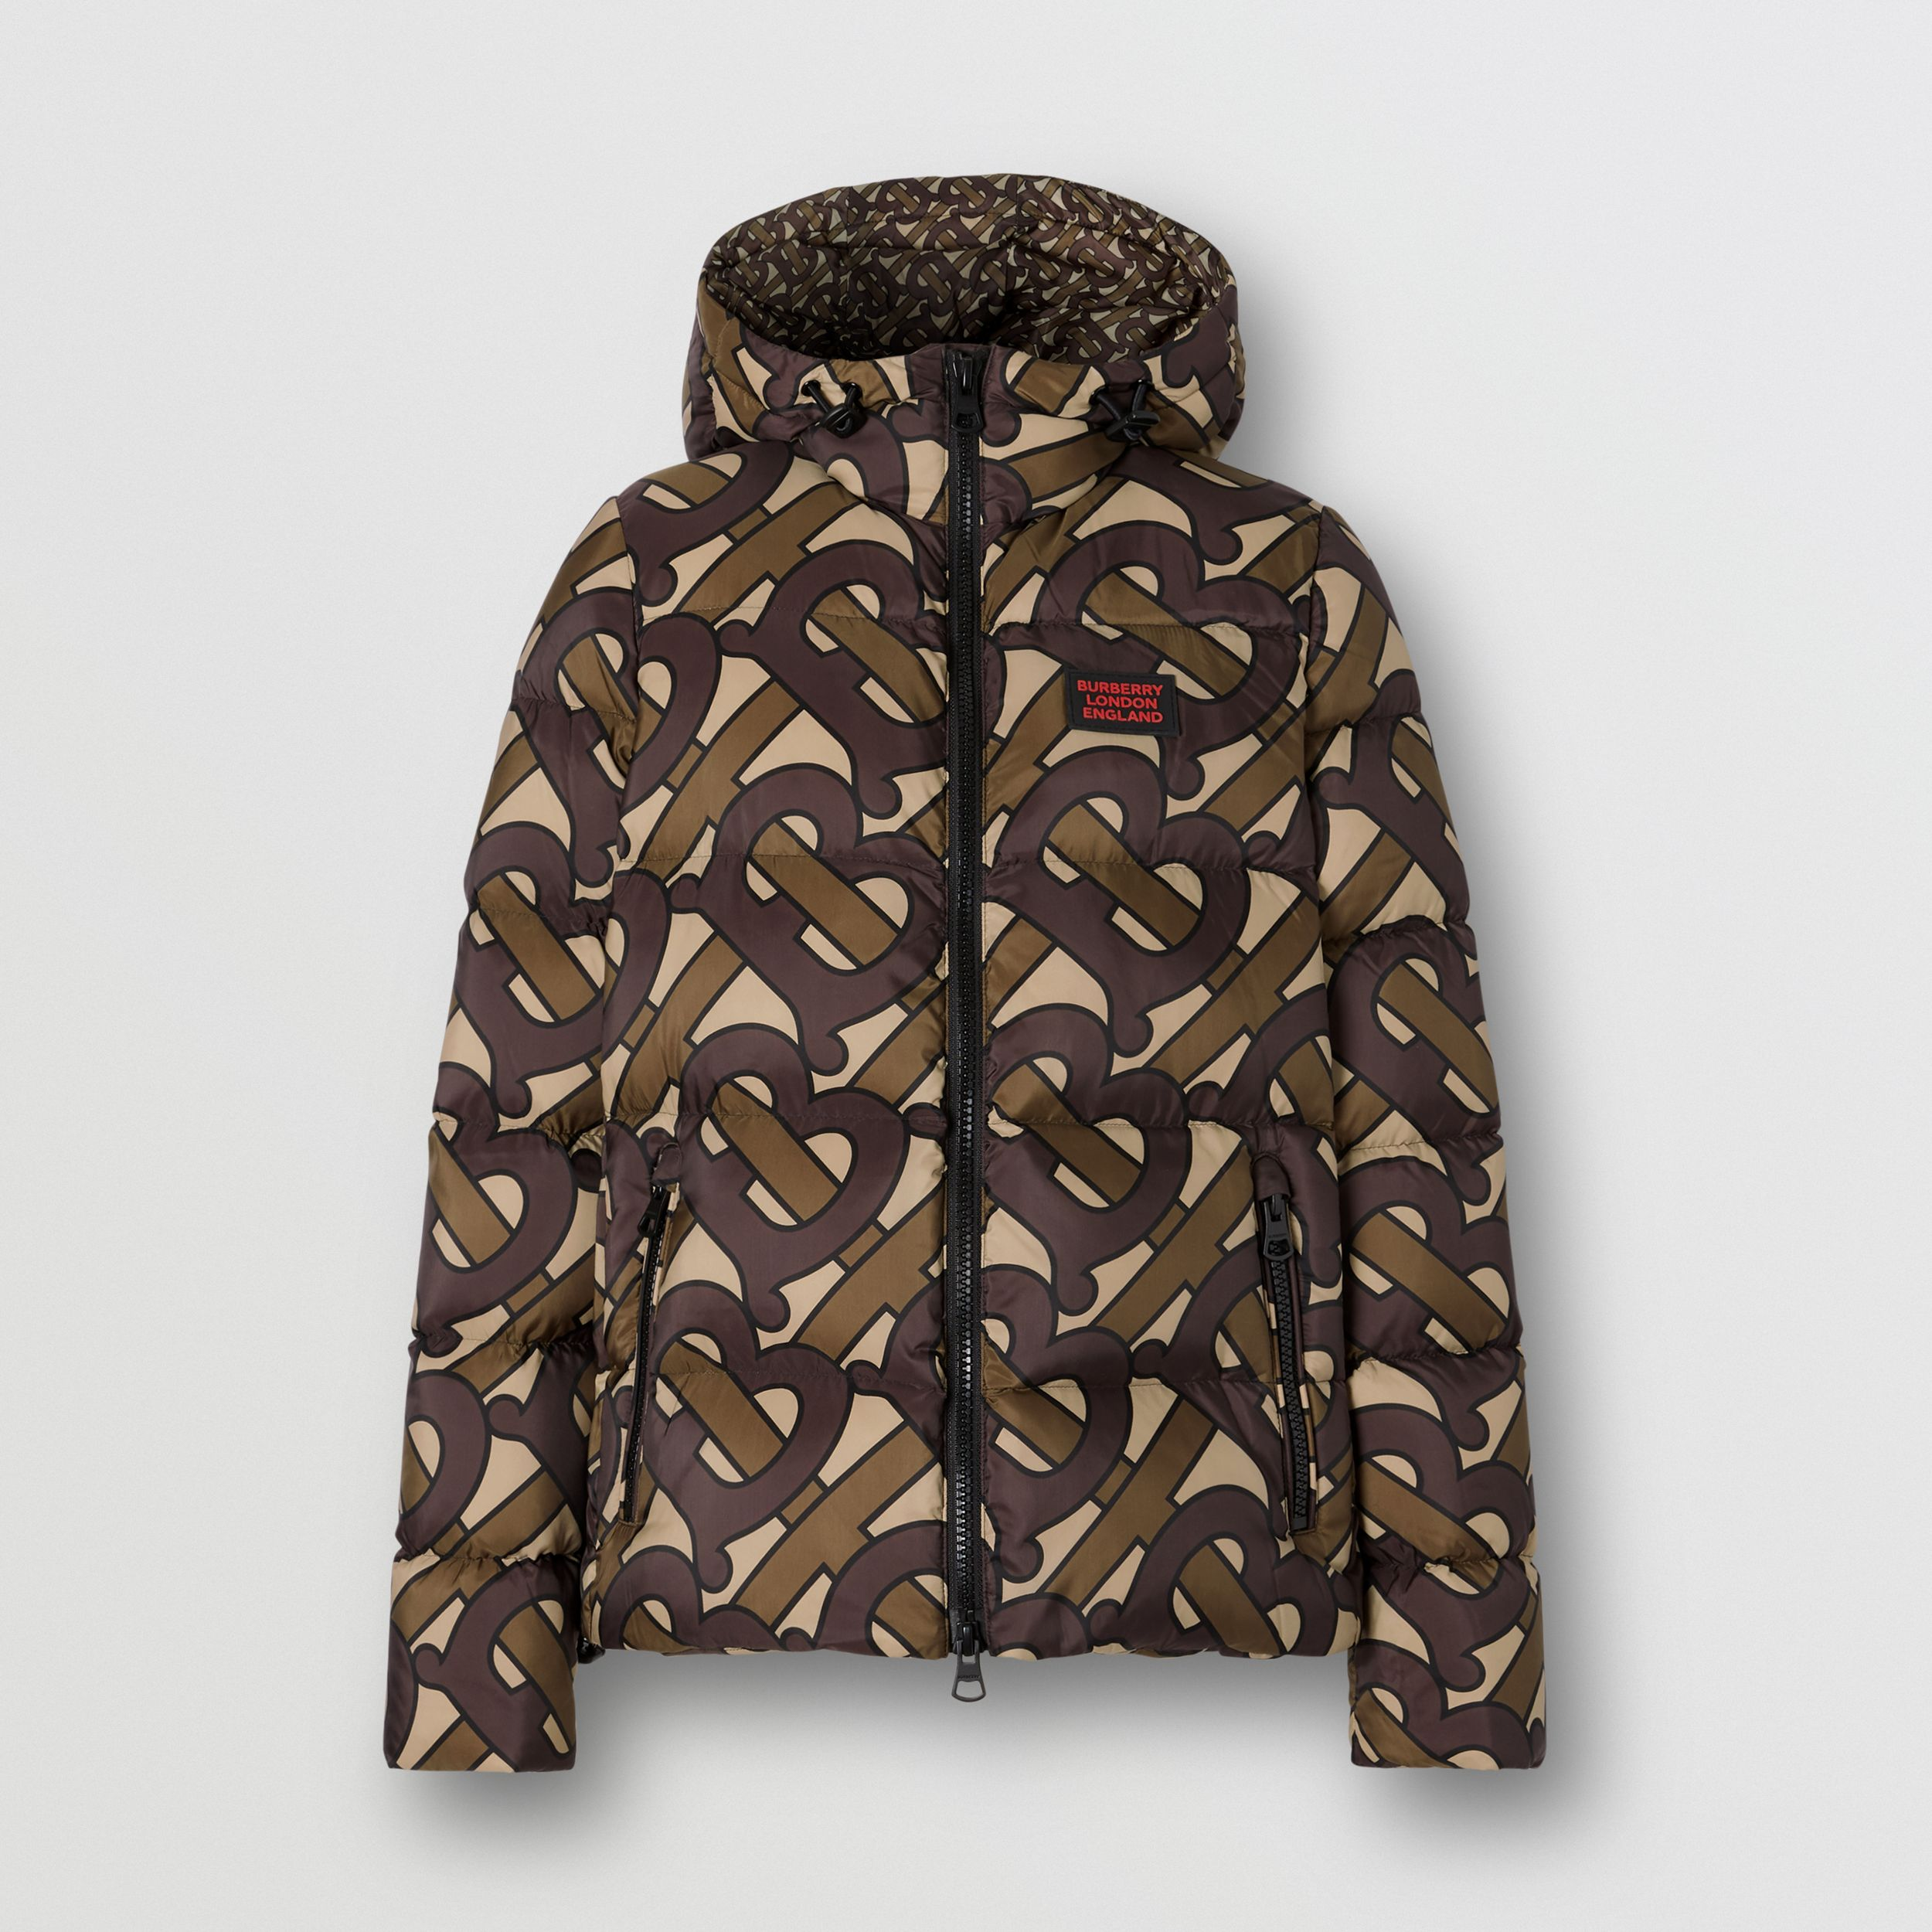 Monogram Print Hooded Puffer Jacket in Bridle Brown - Women | Burberry - 4